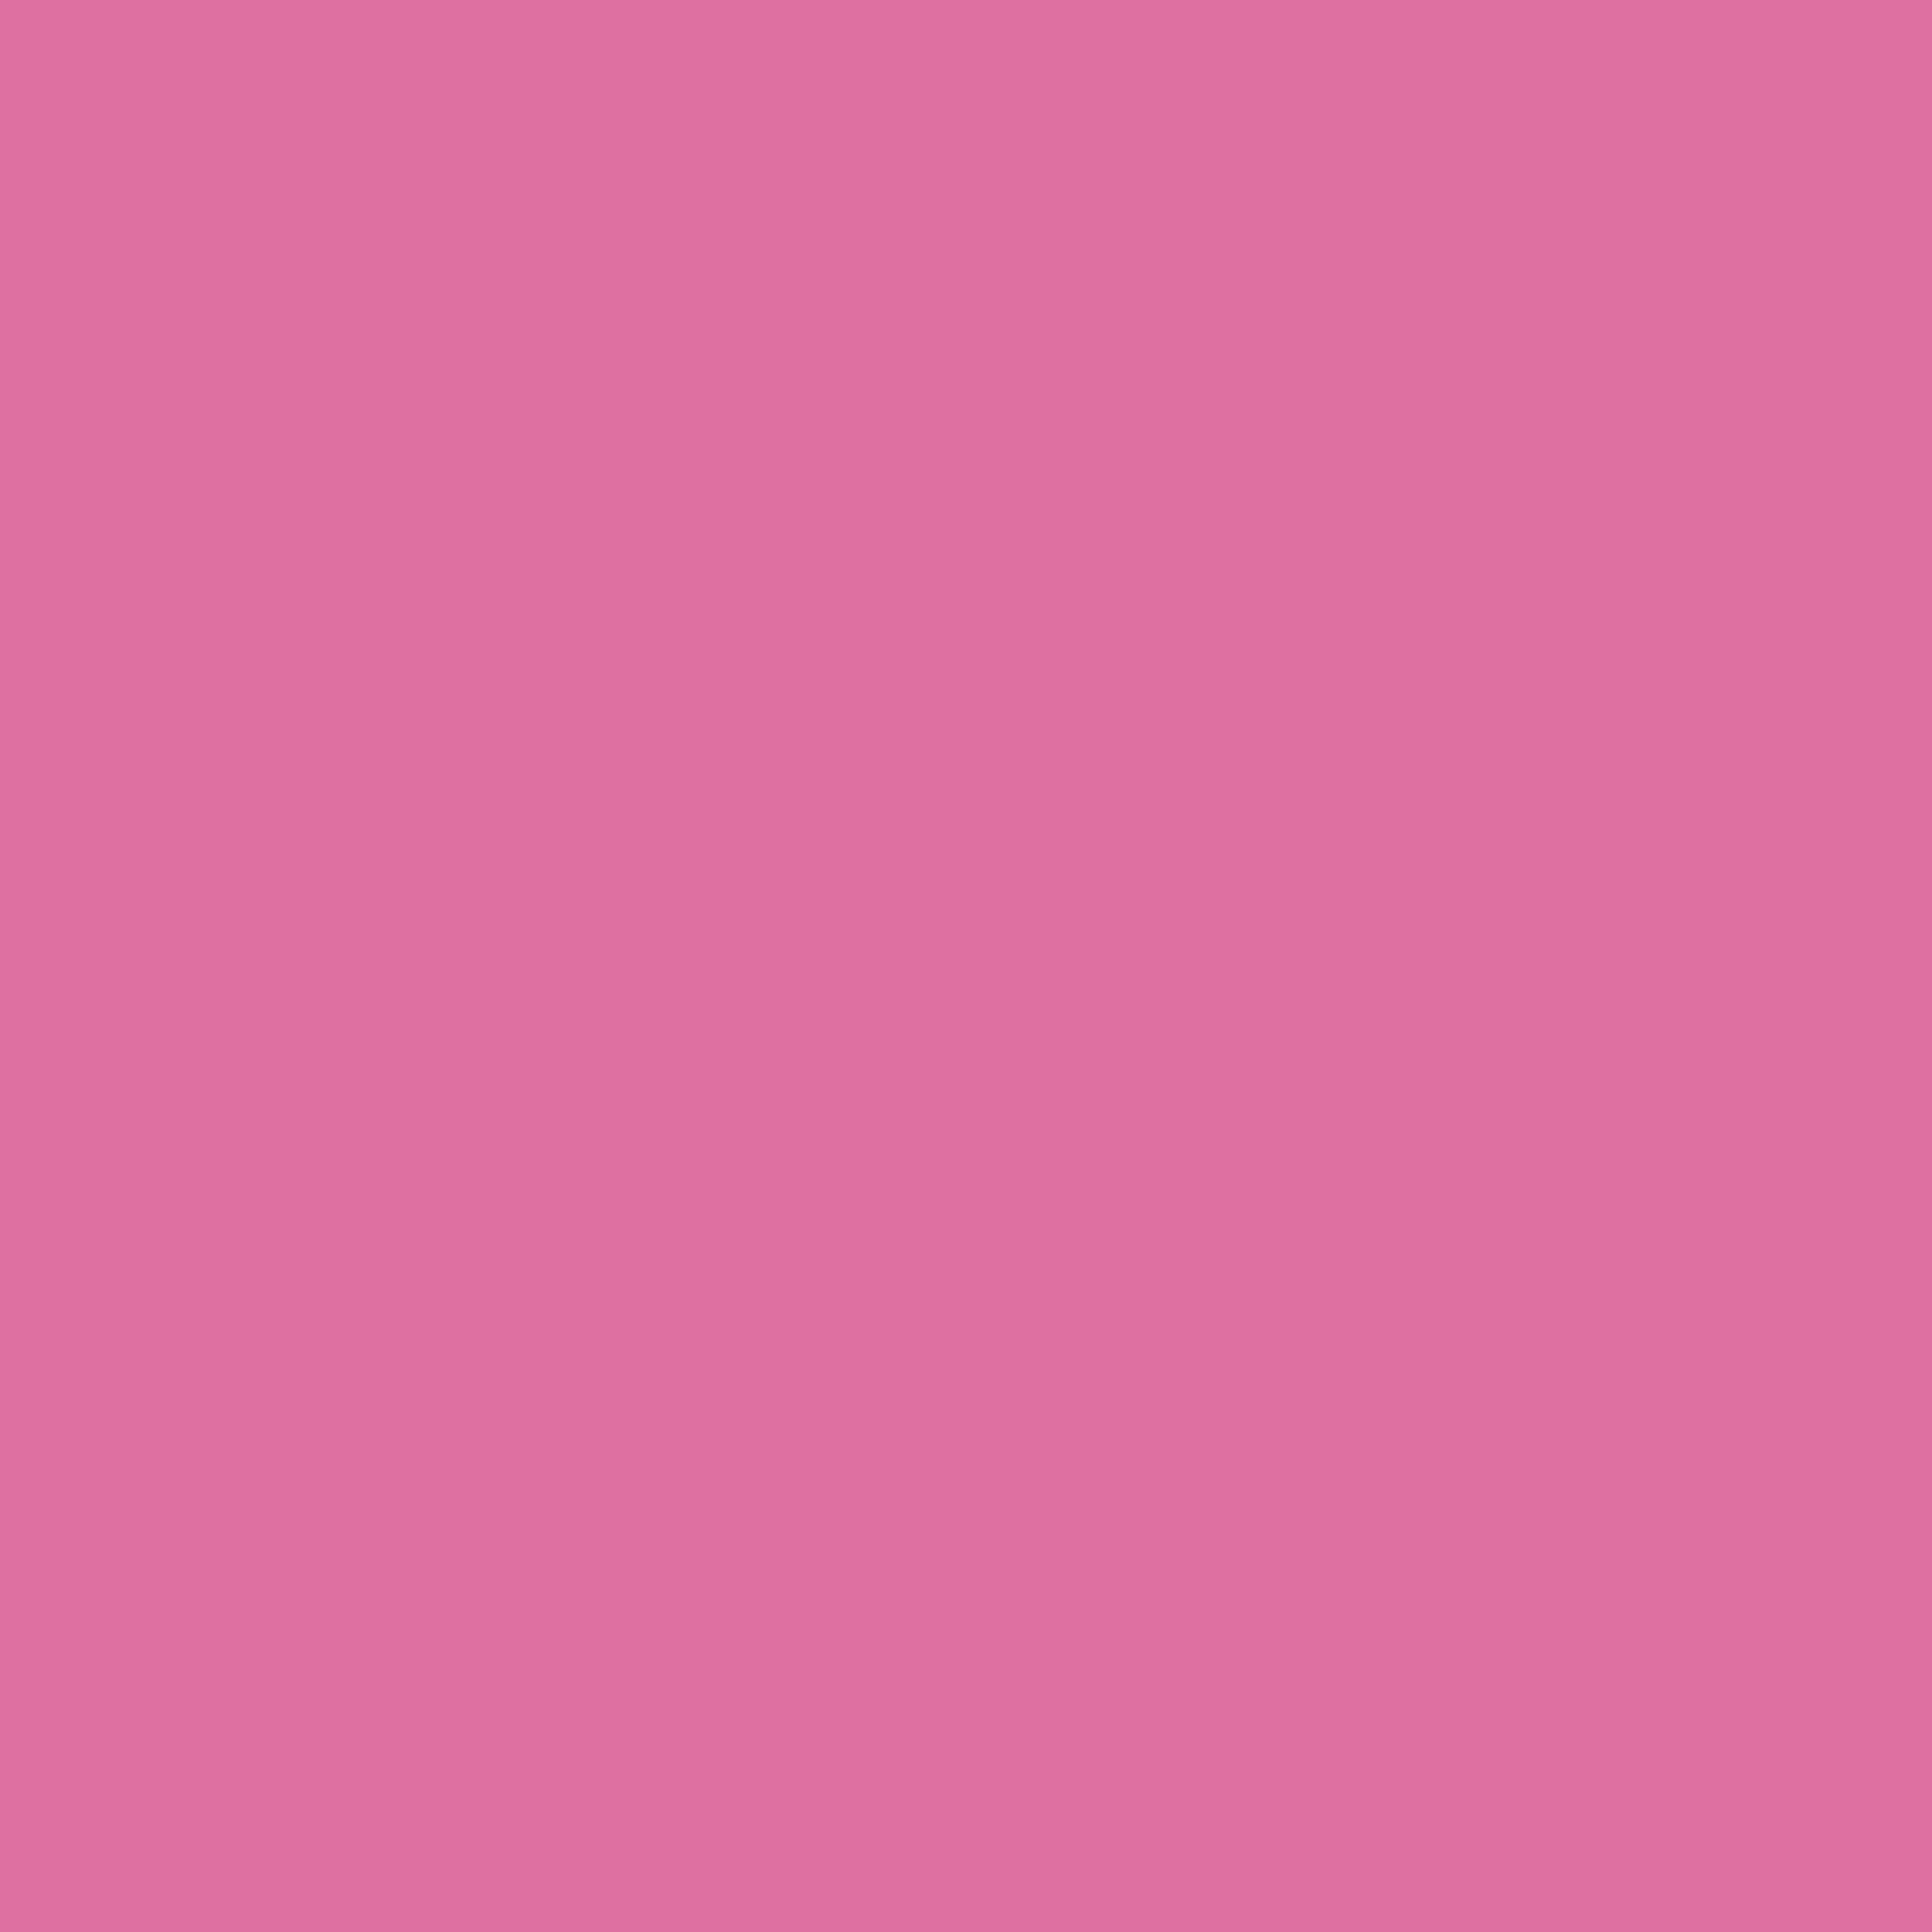 3600x3600 Thulian Pink Solid Color Background